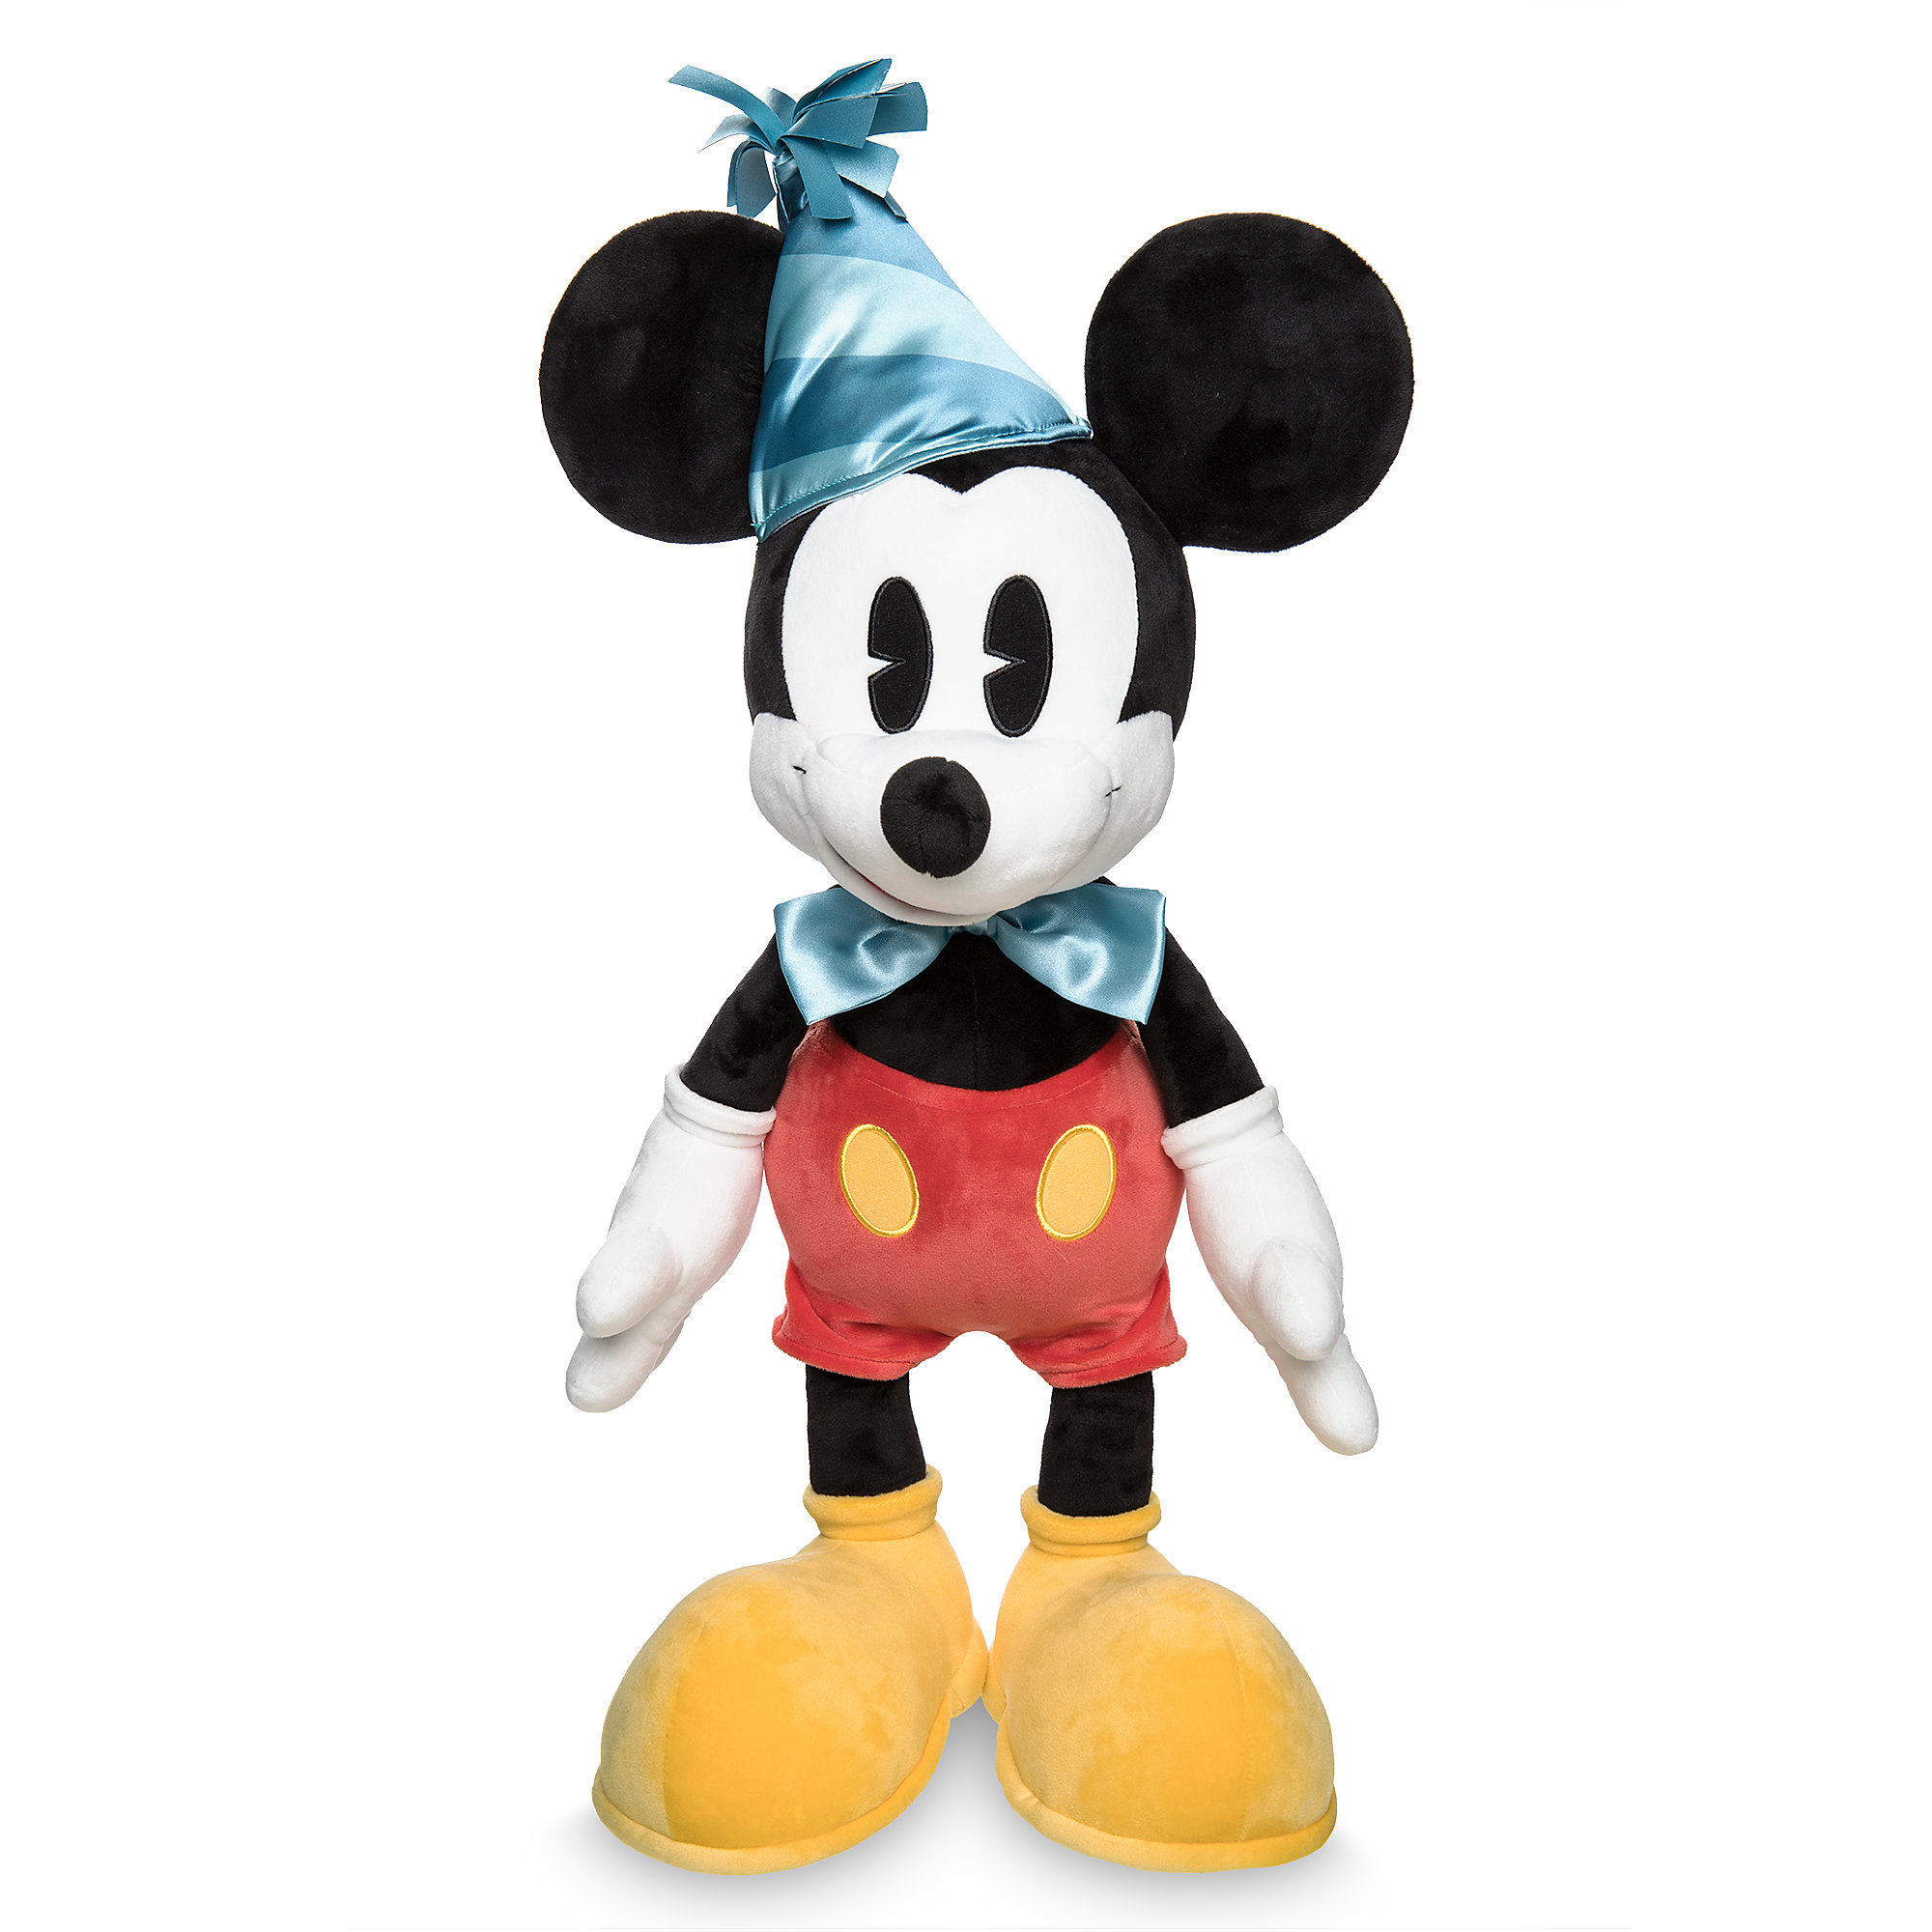 Disney Plush - Mickey Mouse Celebration - Medium - Disney World